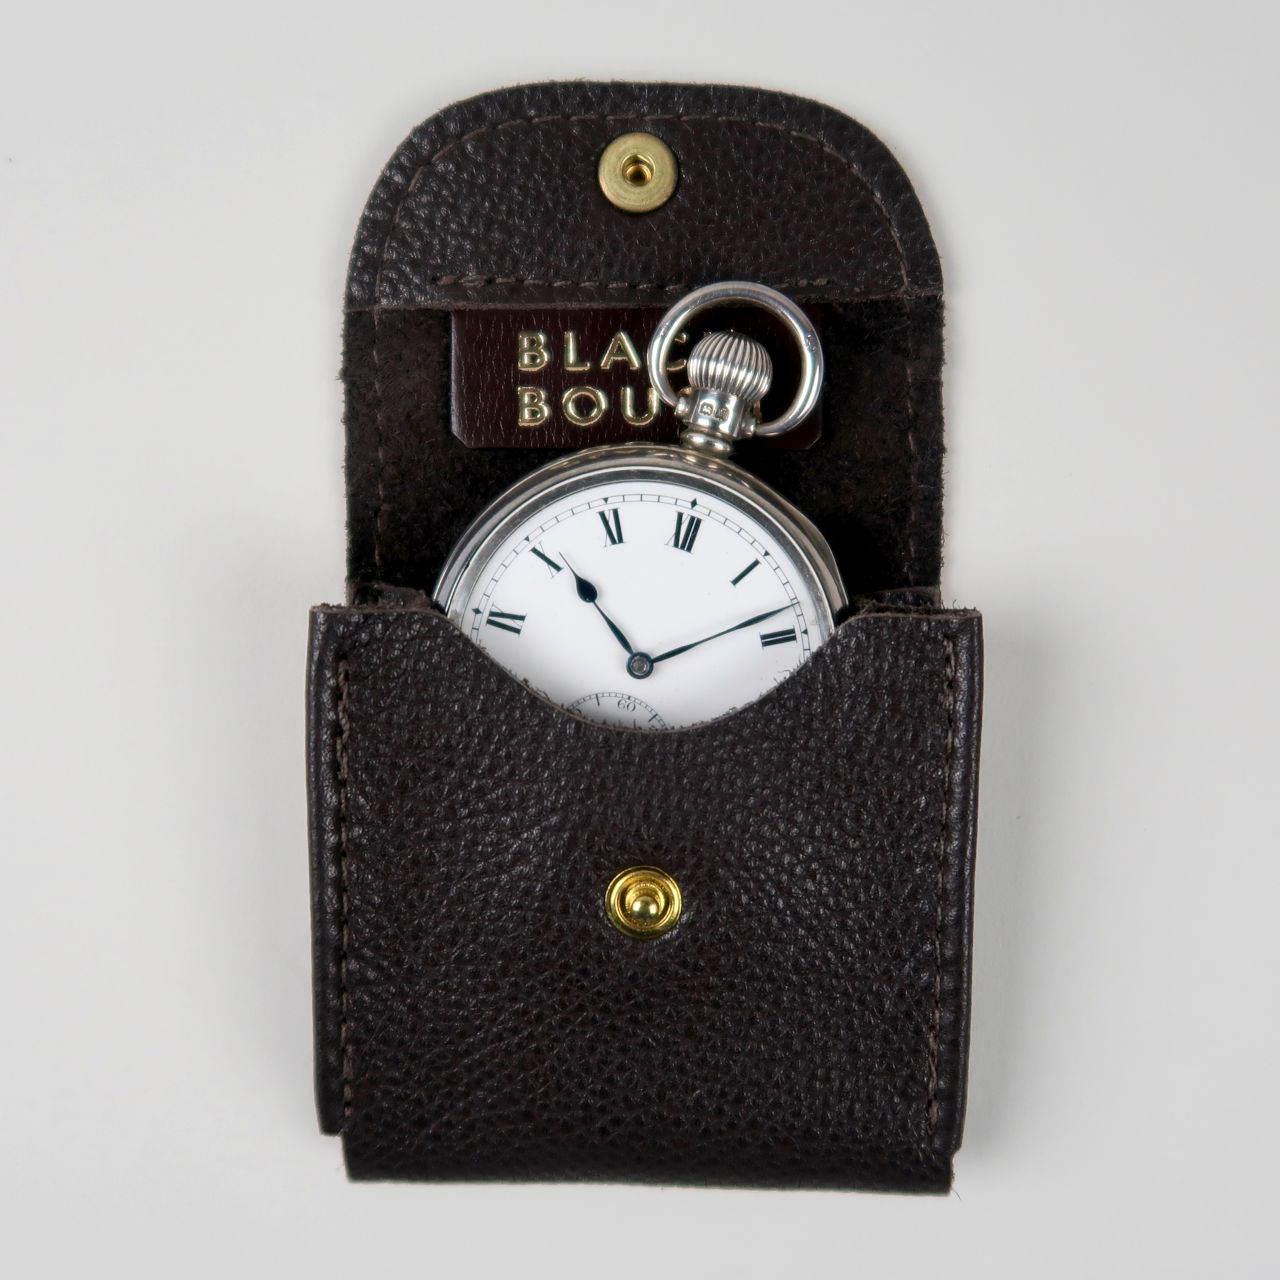 Dark brown leather pocket watch pouch